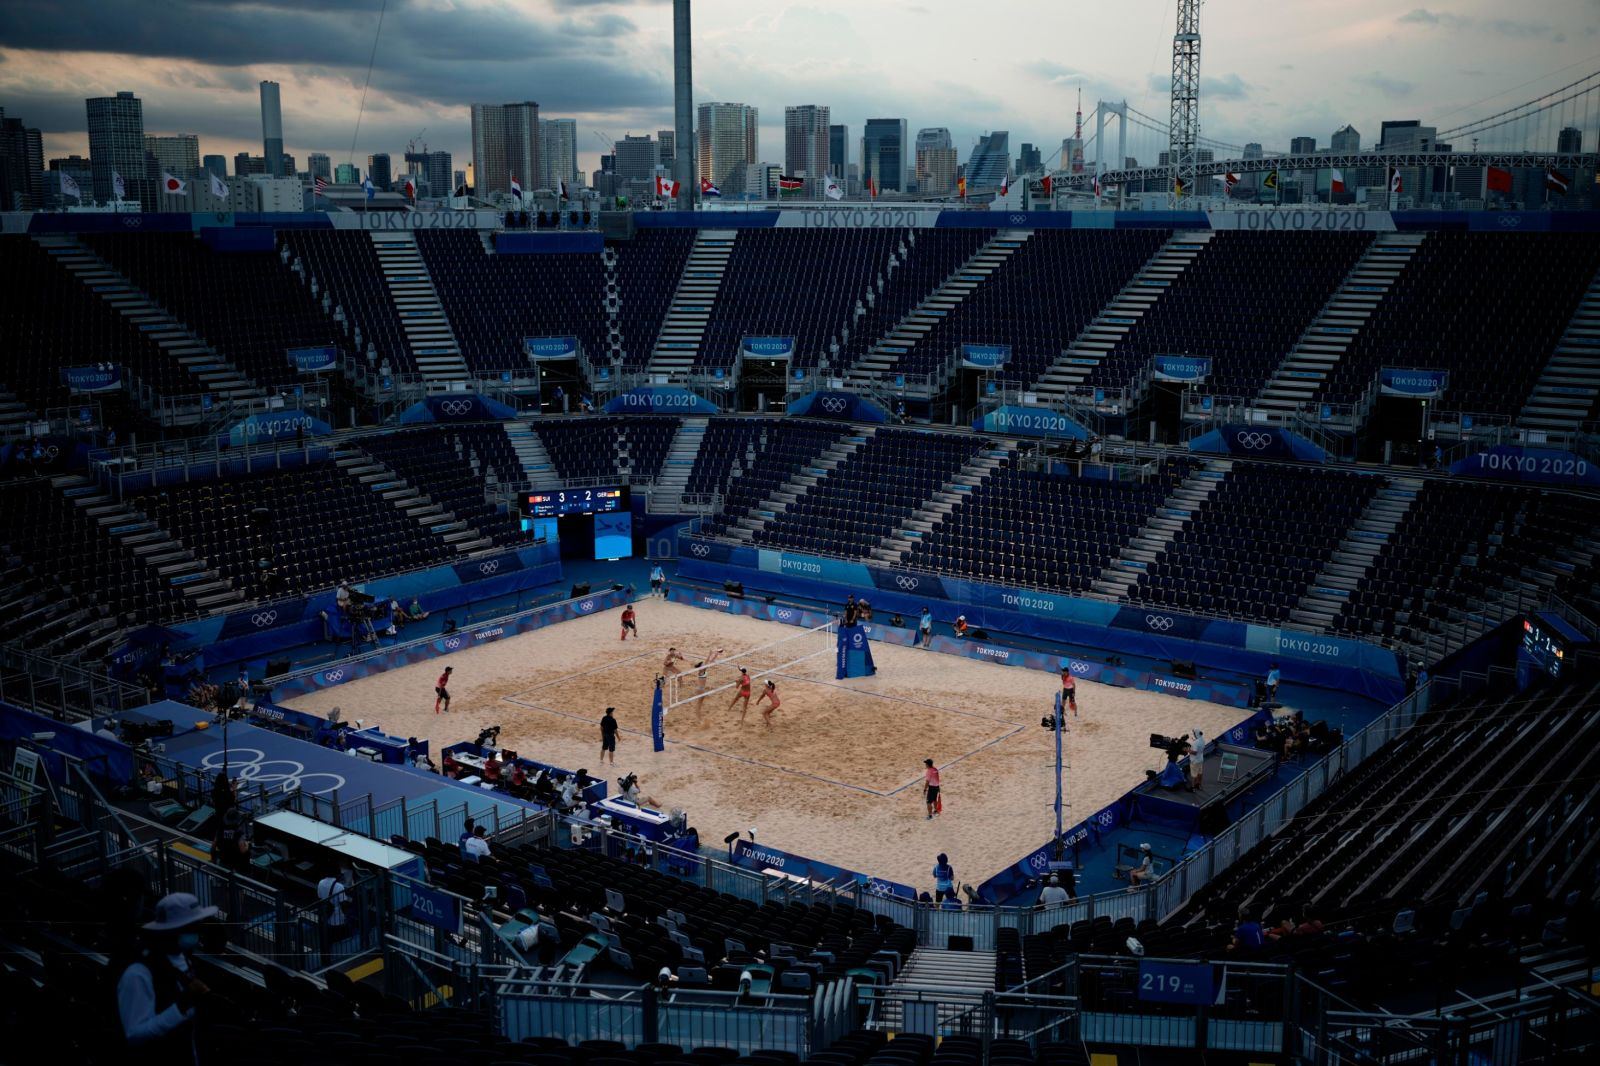 Germany's Julia Sude and Karla Borger play against Switzerland's Anouk Verge-Depre and Joana Heidrich during a women's beach volleyball match in an empty Shiokaze Park on July 24.